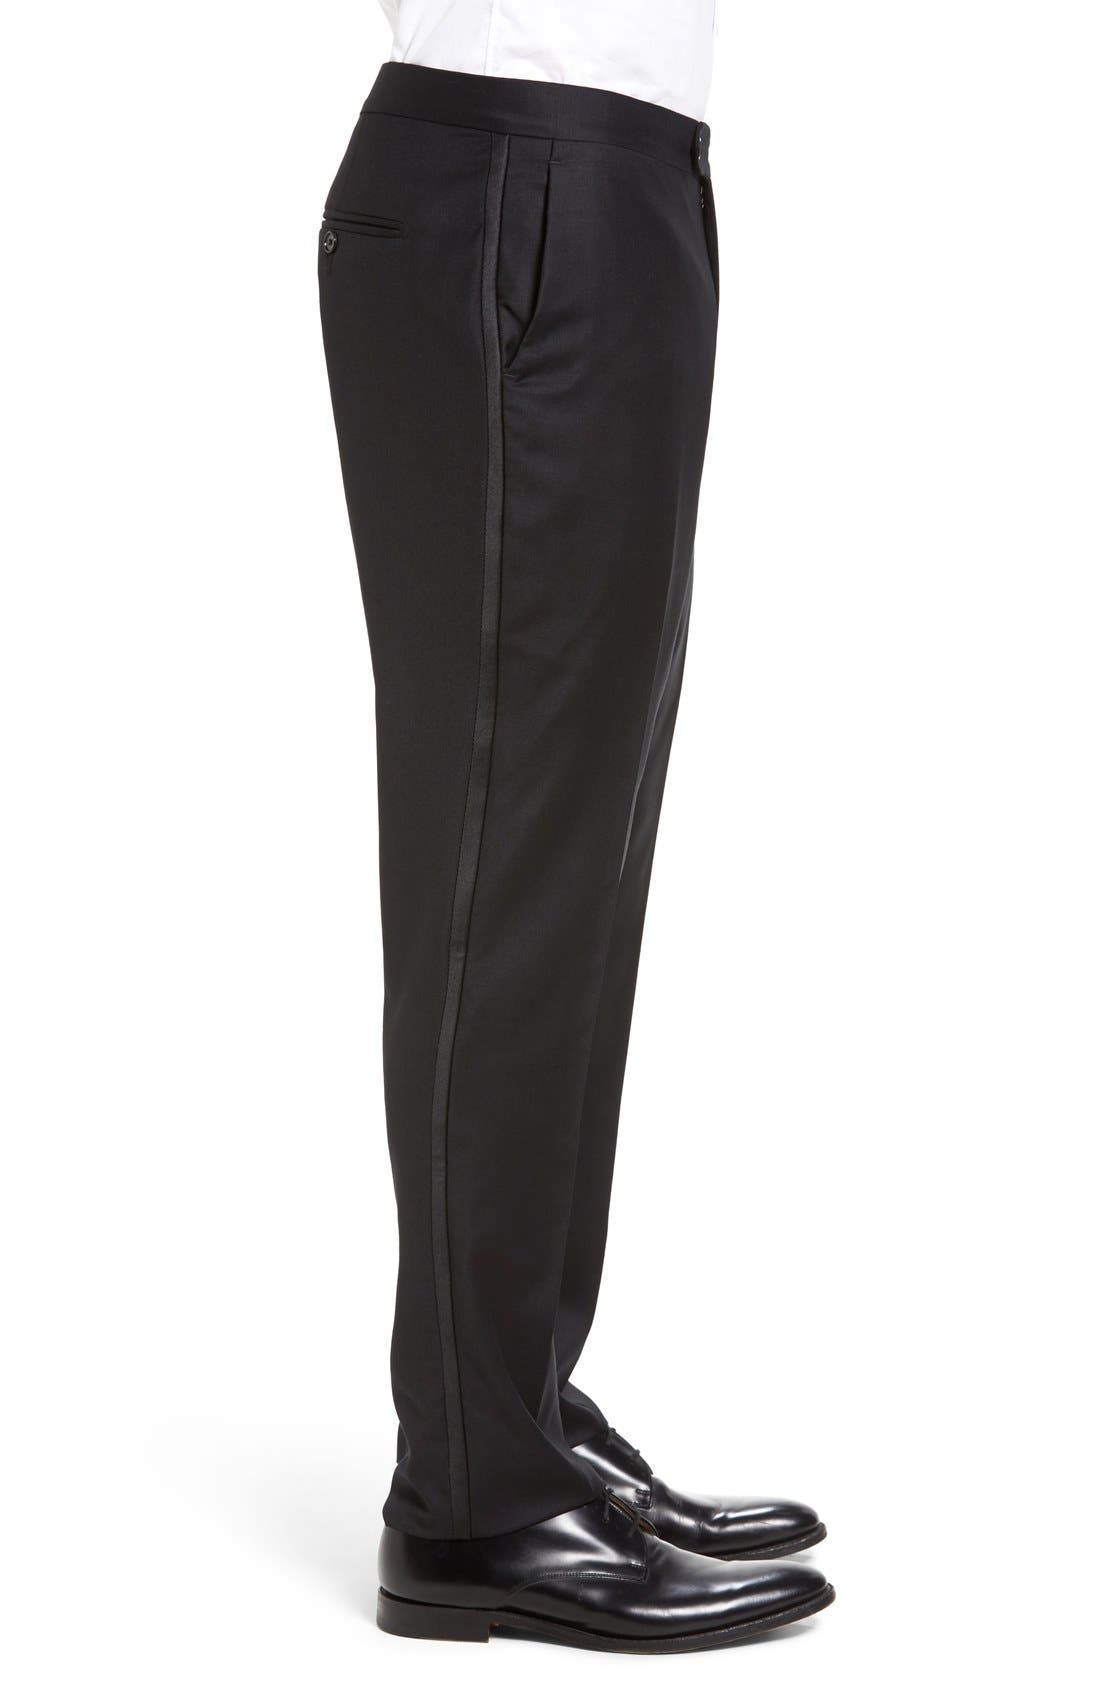 Dagger Flat Front Formal Wool Trousers,                             Alternate thumbnail 3, color,                             001